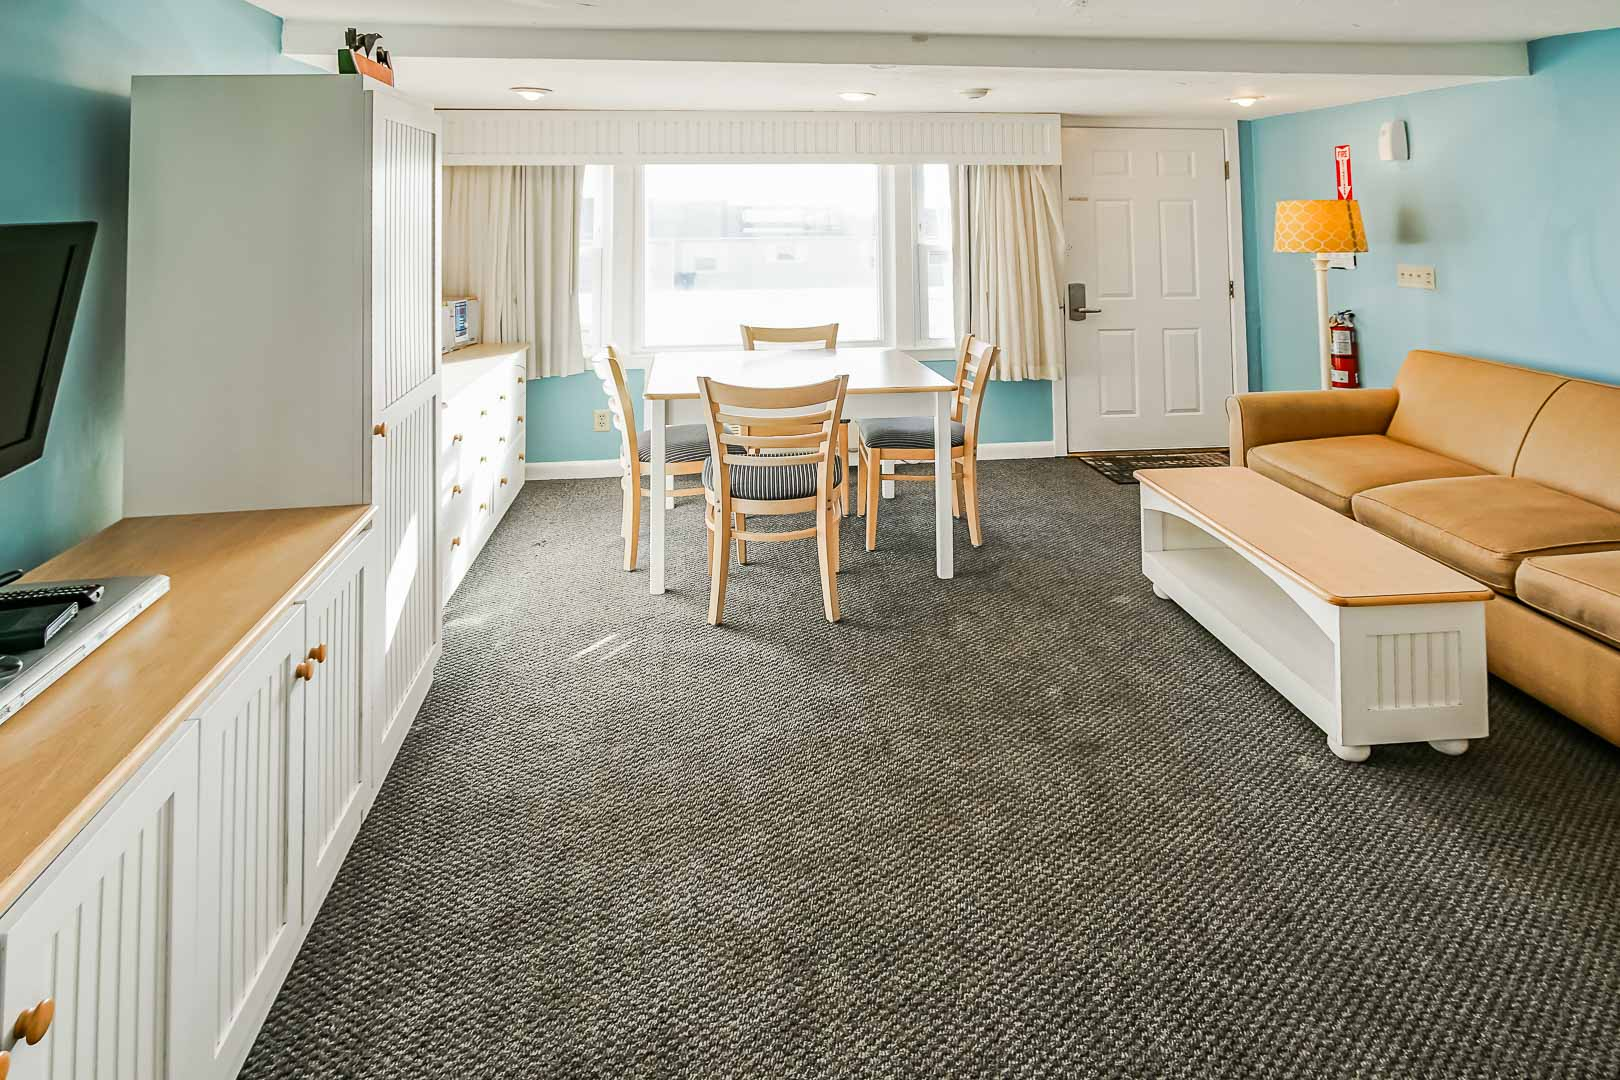 A standard dining and living room area at VRI's Seawinds II Resort in Massachusetts.